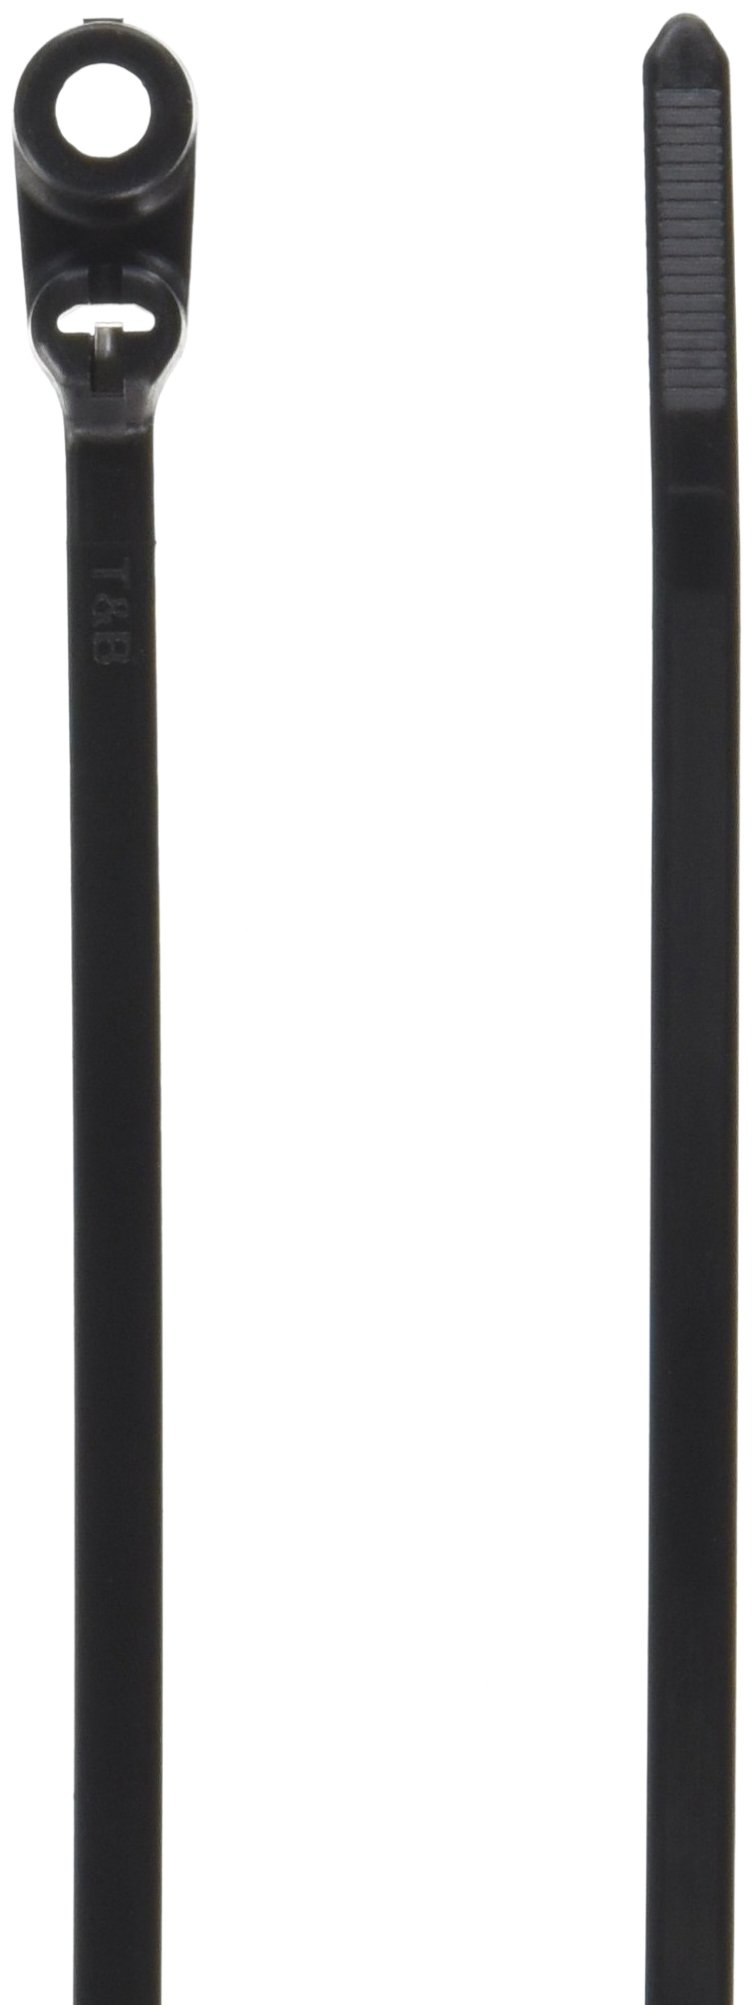 Thomas & Betts TY535MX Cable Tie, UV Resistant Nylon, 50 lb, 8'', 10 Mounting Hole, Black (Pack of 100)